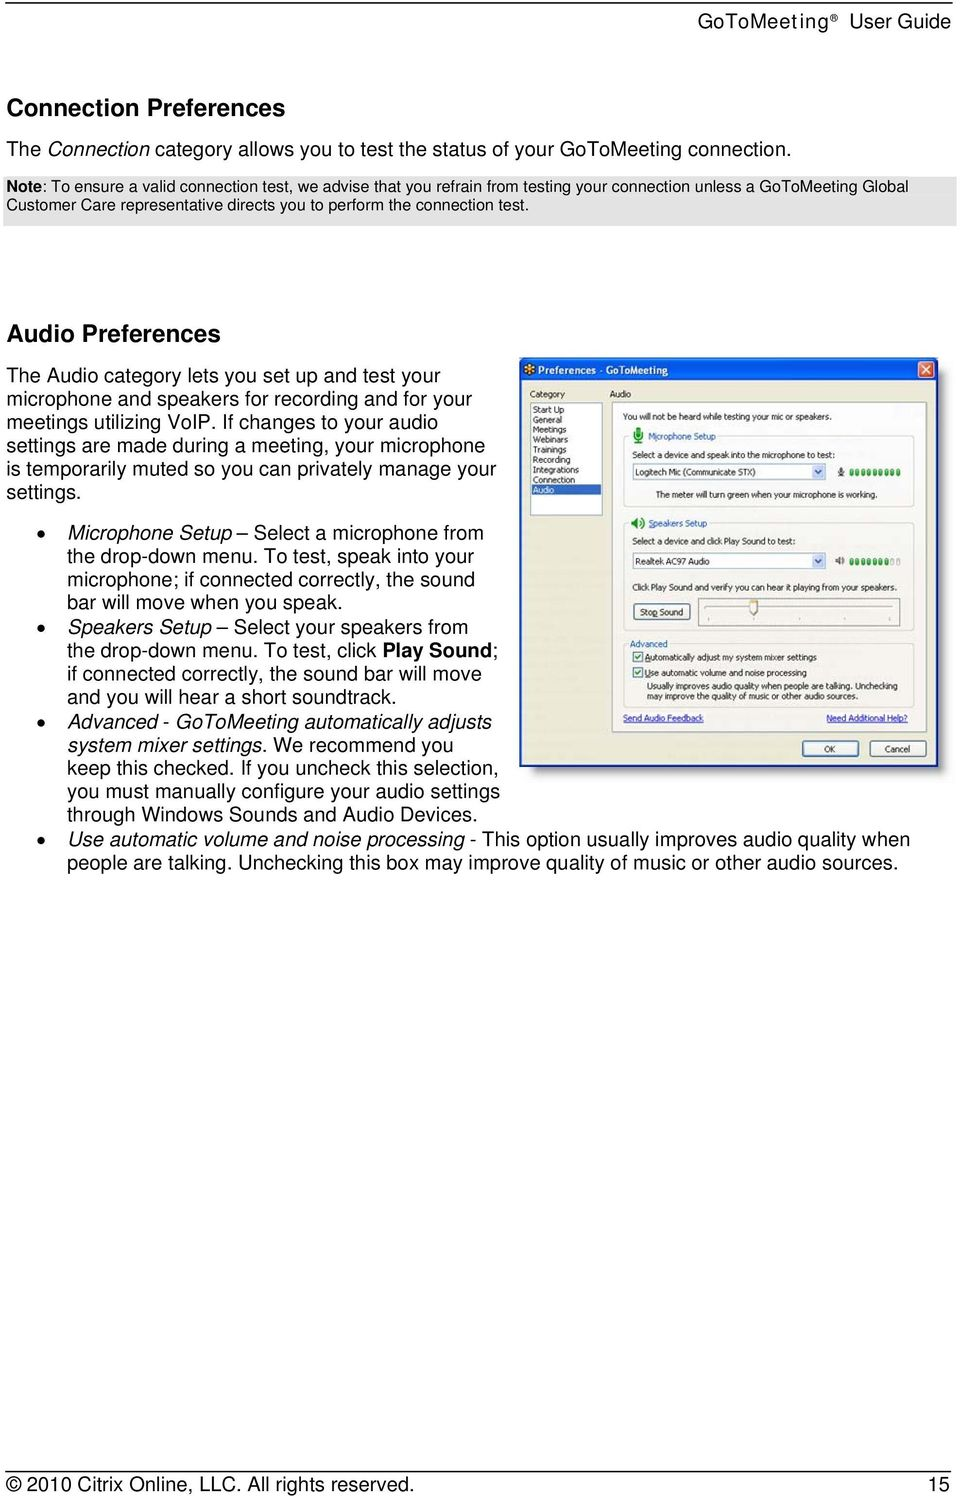 Audio Preferences The Audio category lets you set up and test your microphone and speakers for recording and for your meetings utilizing VoIP.